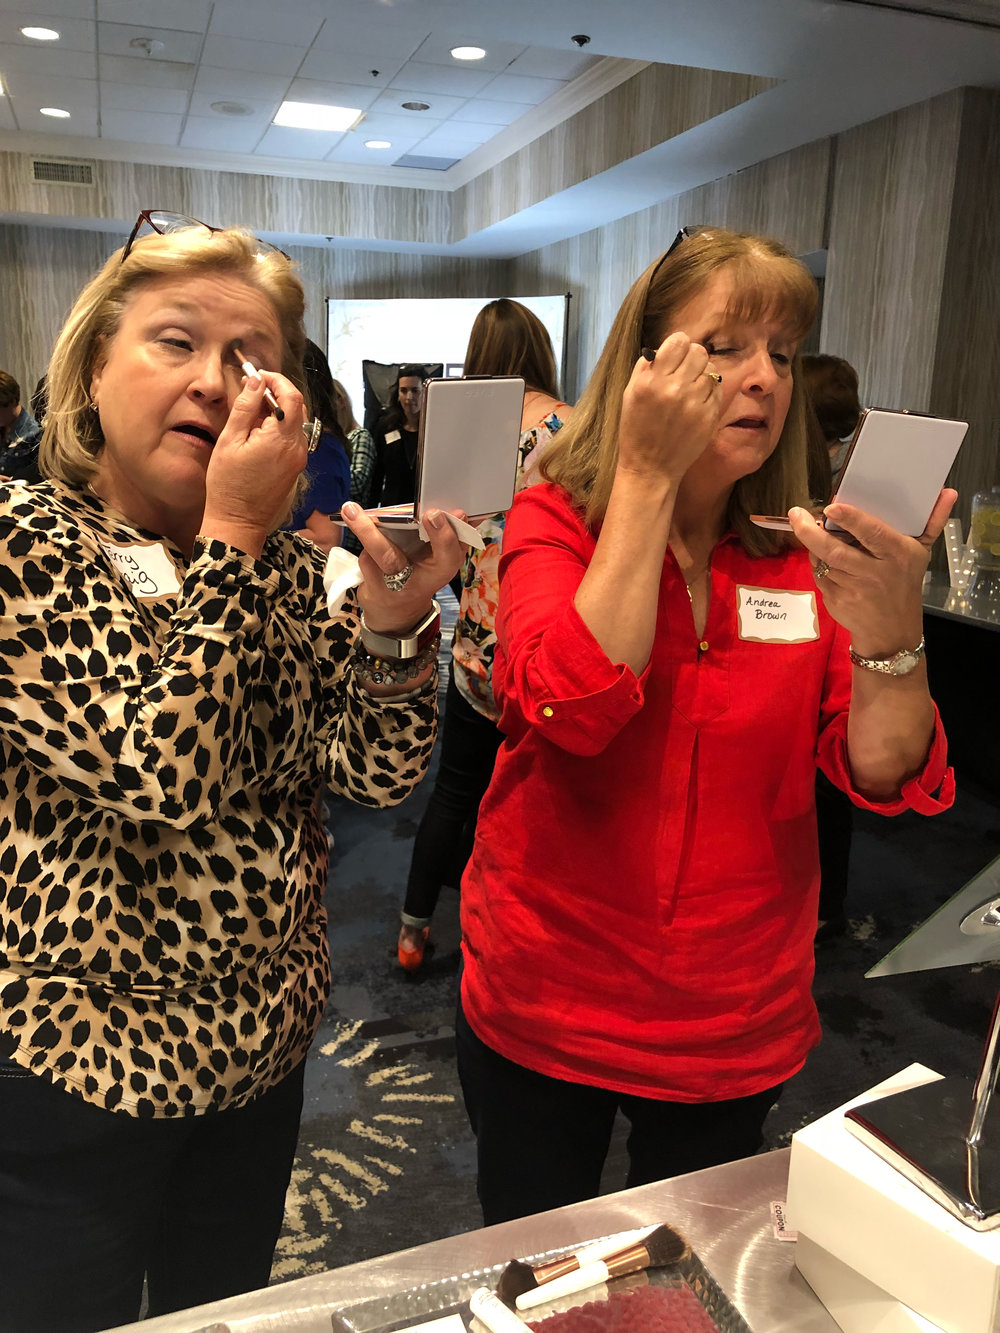 MEGA event attendees were the first to test drive our new products, like the OUT THE DOOR Cheek & Eye Palettes shown here.